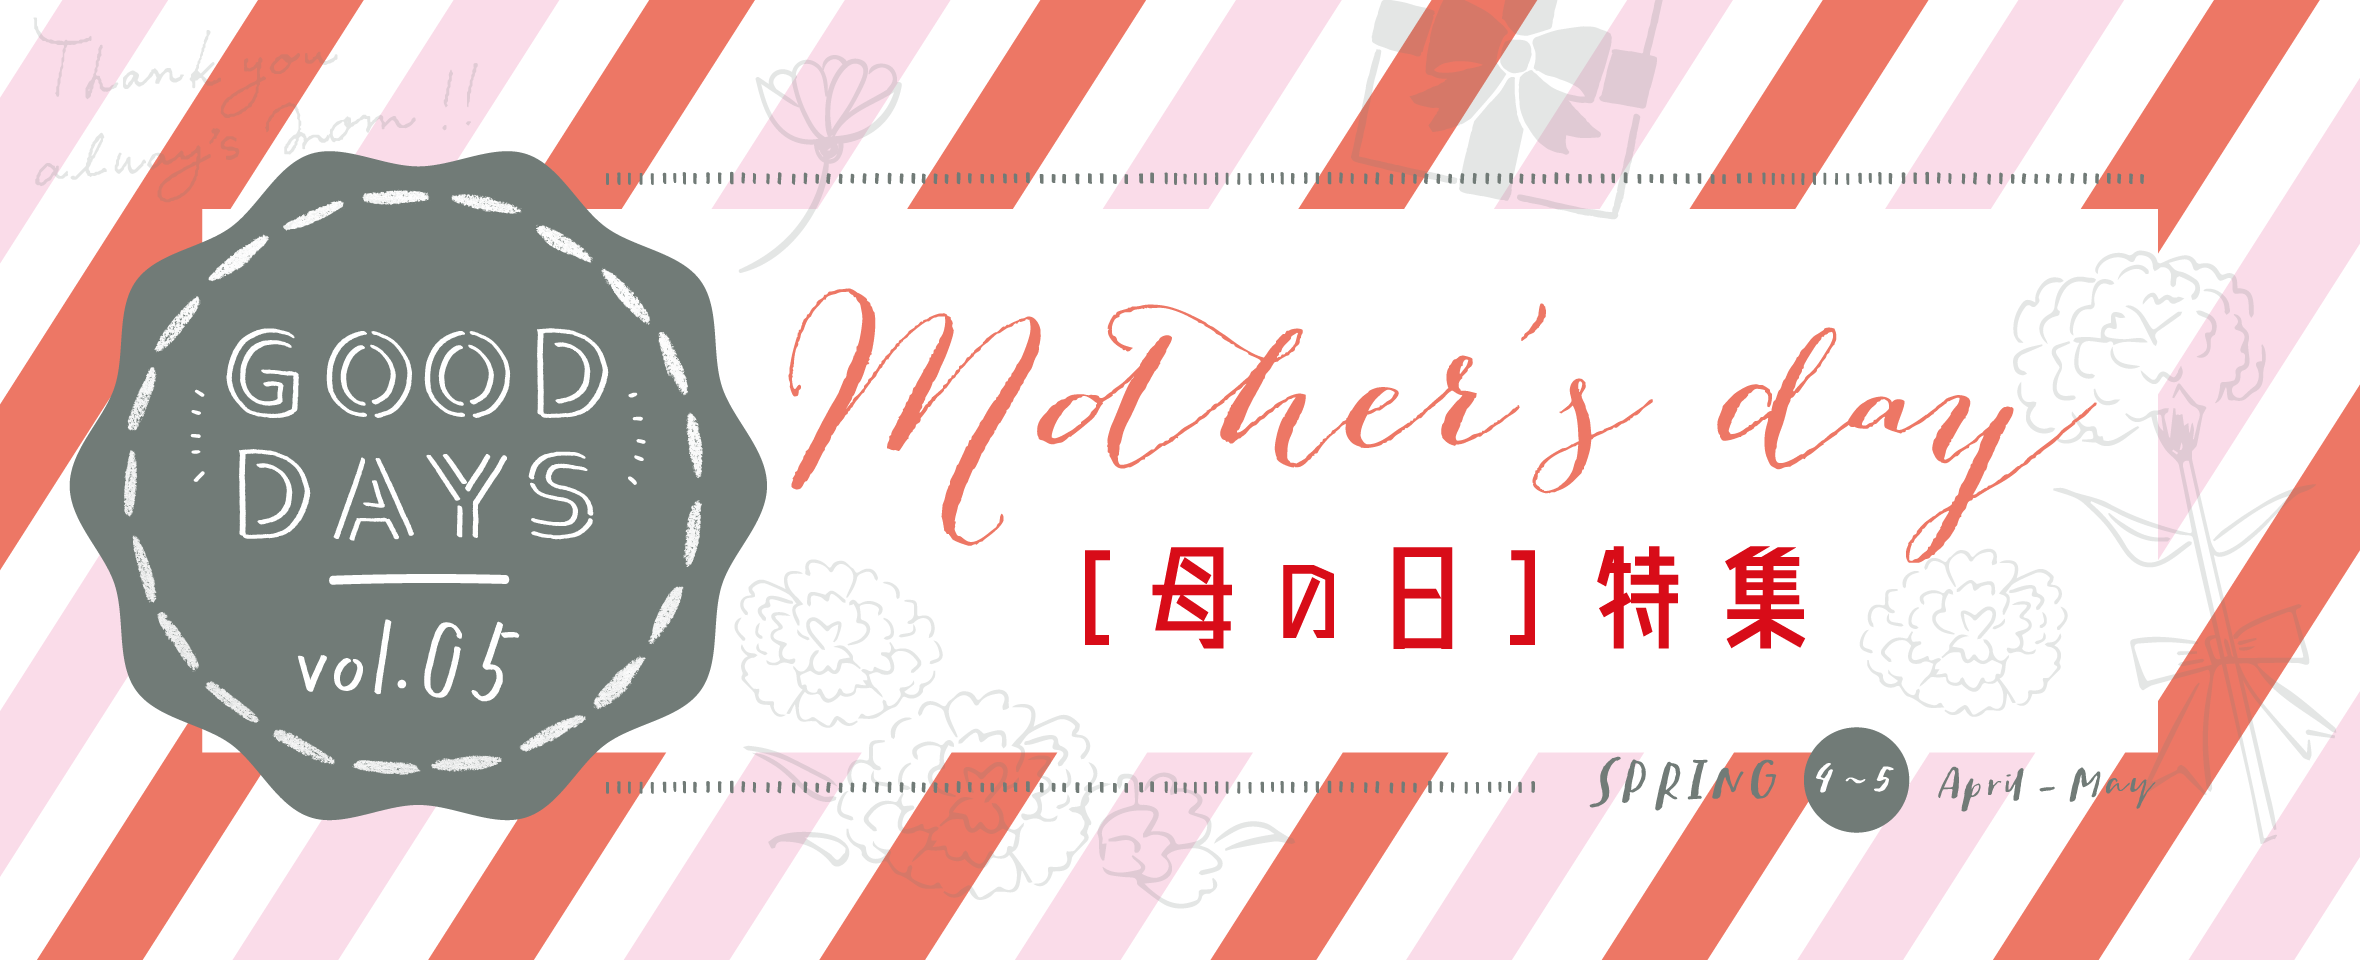 GOOD DAYS Vol.5 Mother's day [母の日]特集